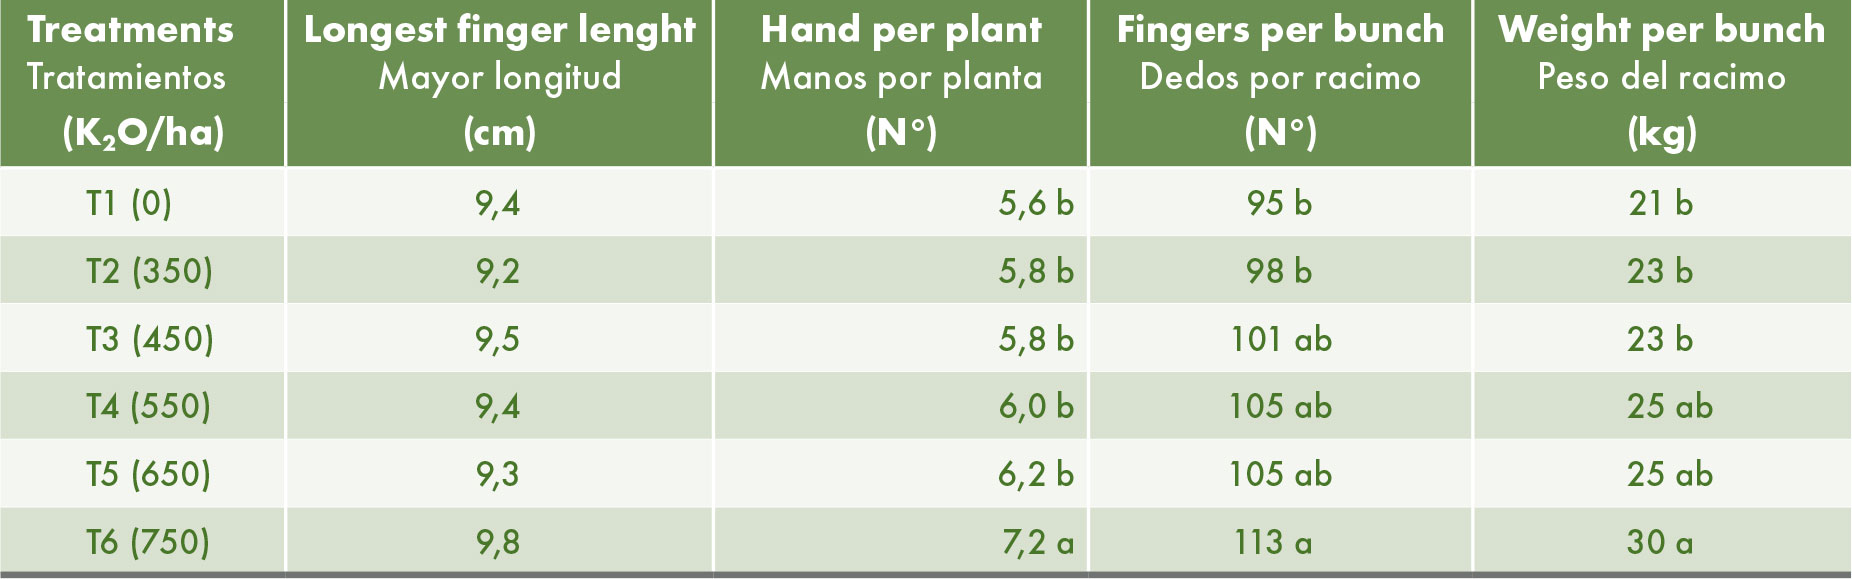 Average length of fingers, number of hands and number of fingers per bunch and average weight of the bunch. Means followed by the same letters are not significantly different (Duncan, 95%).